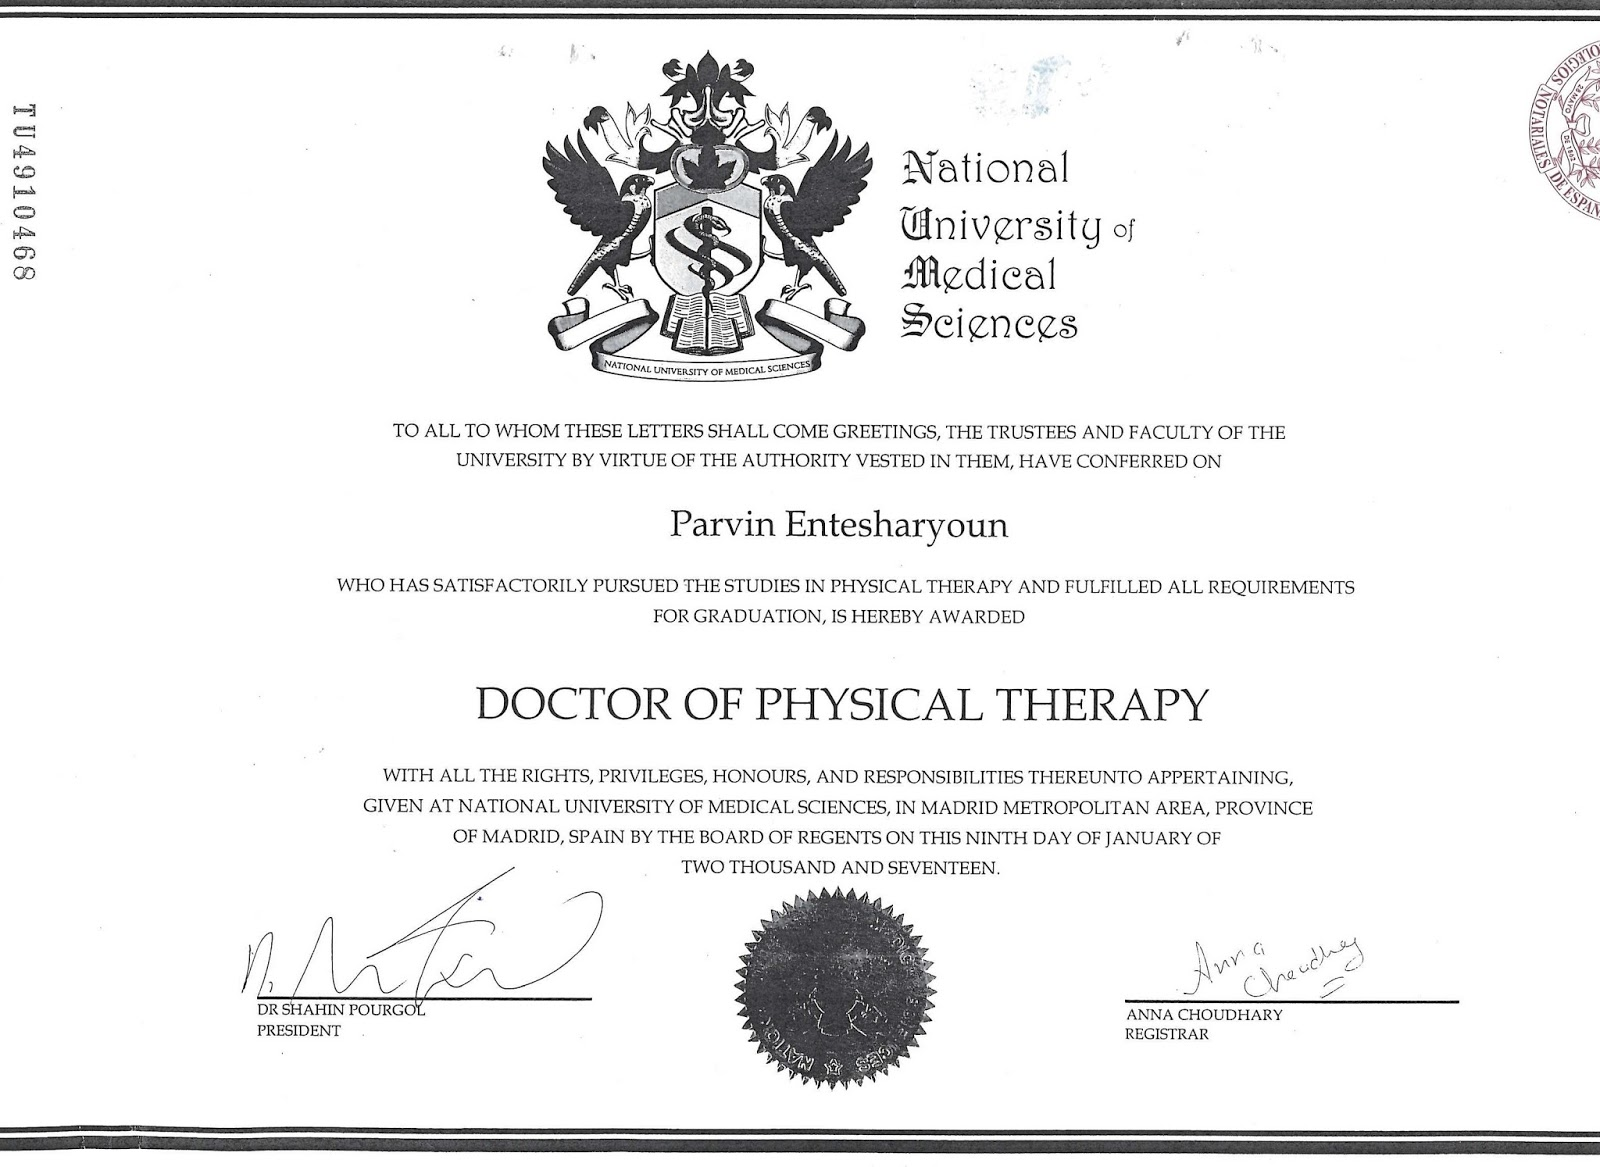 Canadian board of physical therapy -  And Do Doctor Of Osteopathy Degrees Are Now Legalized In Spain Officially And Embassies Of Most Countries Now Accept Them Including Canadian Embassy